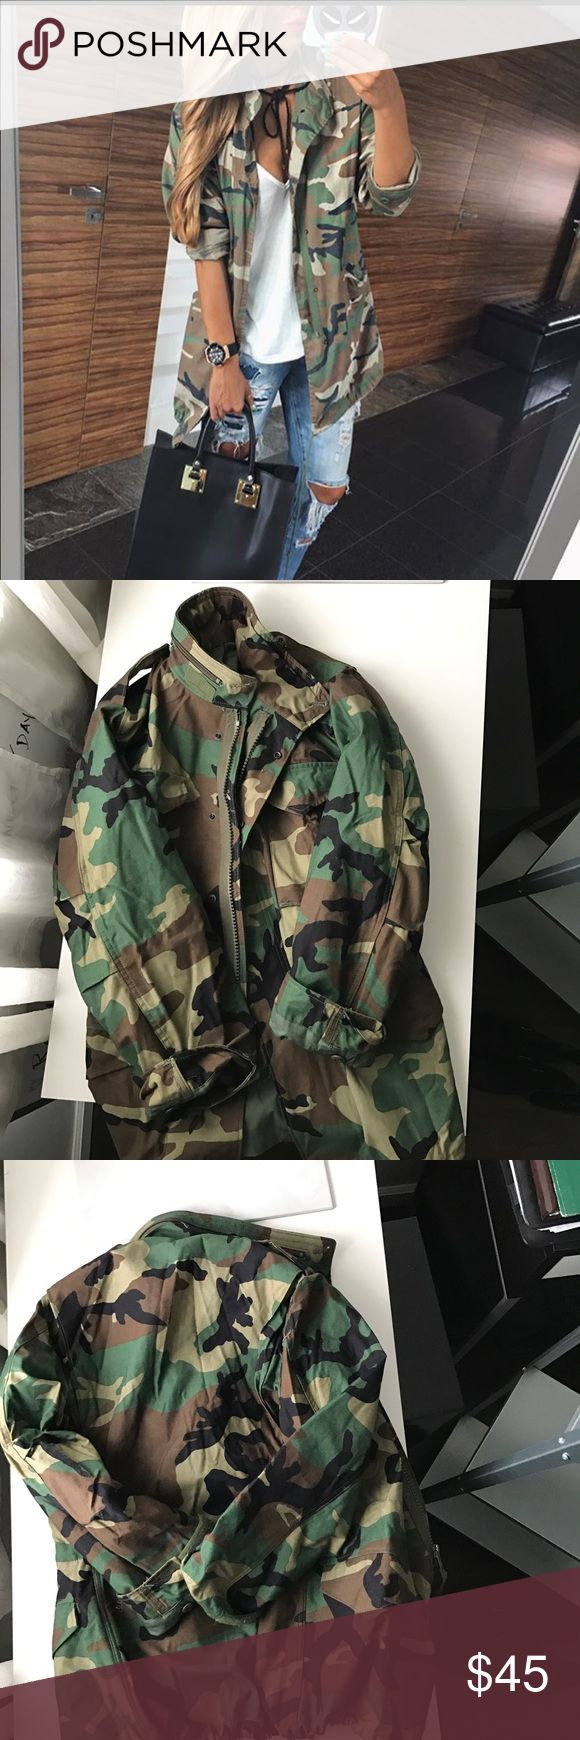 Camouflage Military Field Jacket Camouflage Military Field Jacket. Size XS. Please look at pic that shows height and weight requirements for this size. Brand new. Never worn. Feel free to decorate with your own fashionable patches. NWOT Jackets & Coats